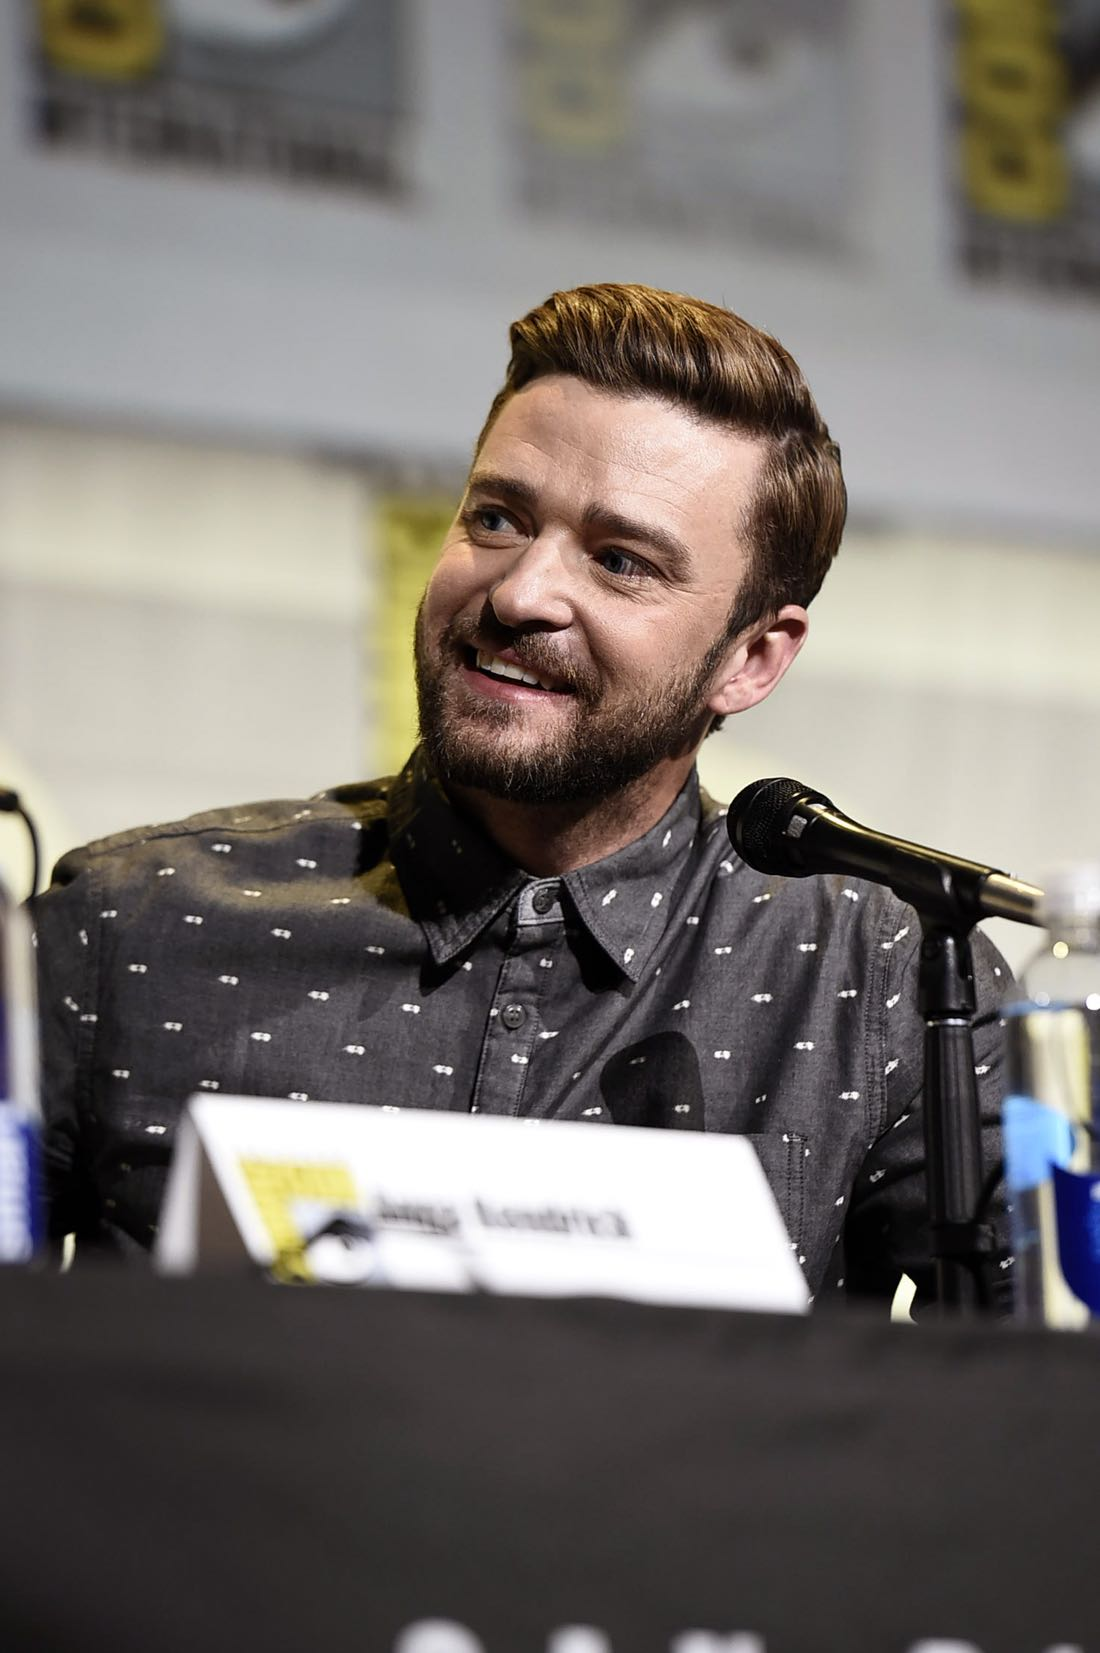 TROLLS voice actor Justin Timberlake at DreamWorks Animation's Comic Con Hall H Panel.